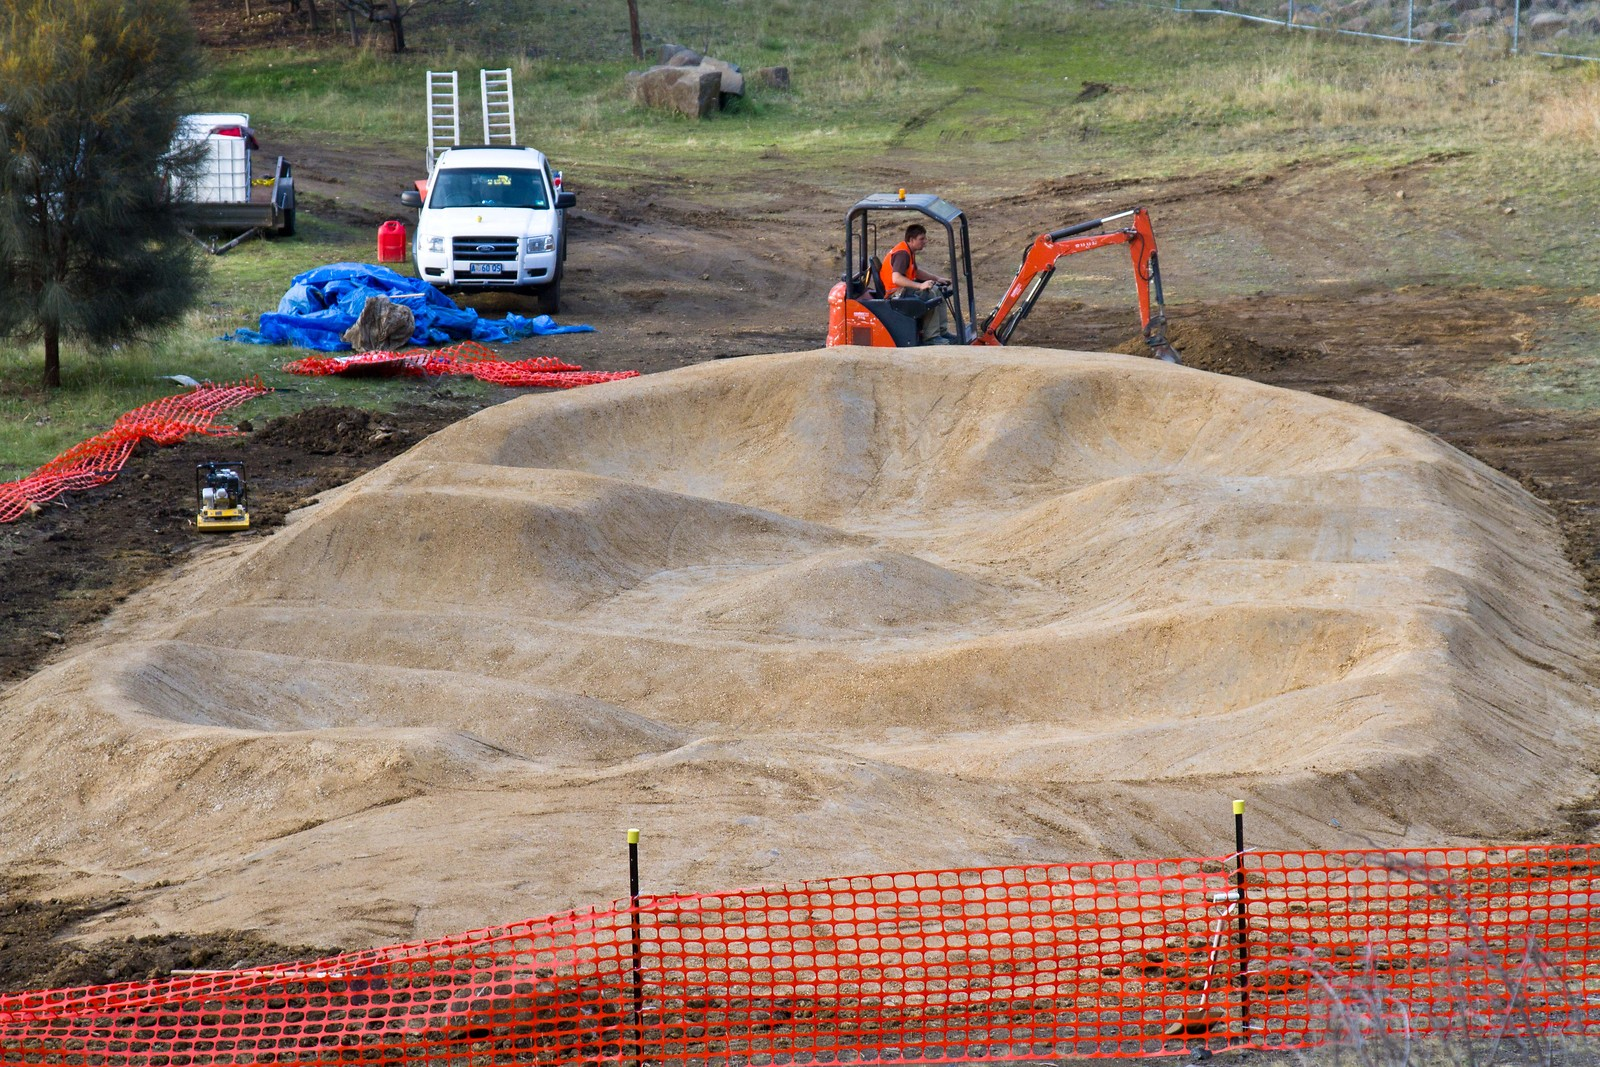 DirtArt Water works pumptrack - FourHills - Mountain Biking Pictures - Vital MTB